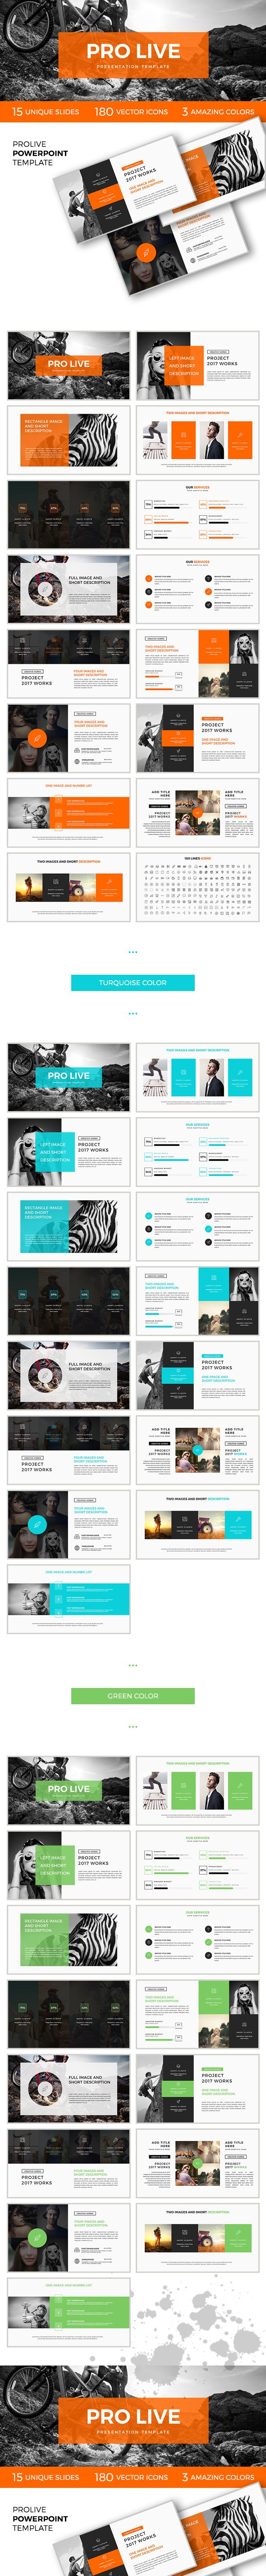 91 best tools powerpoint images on pinterest presentation pro live powerpoint template alramifo Gallery